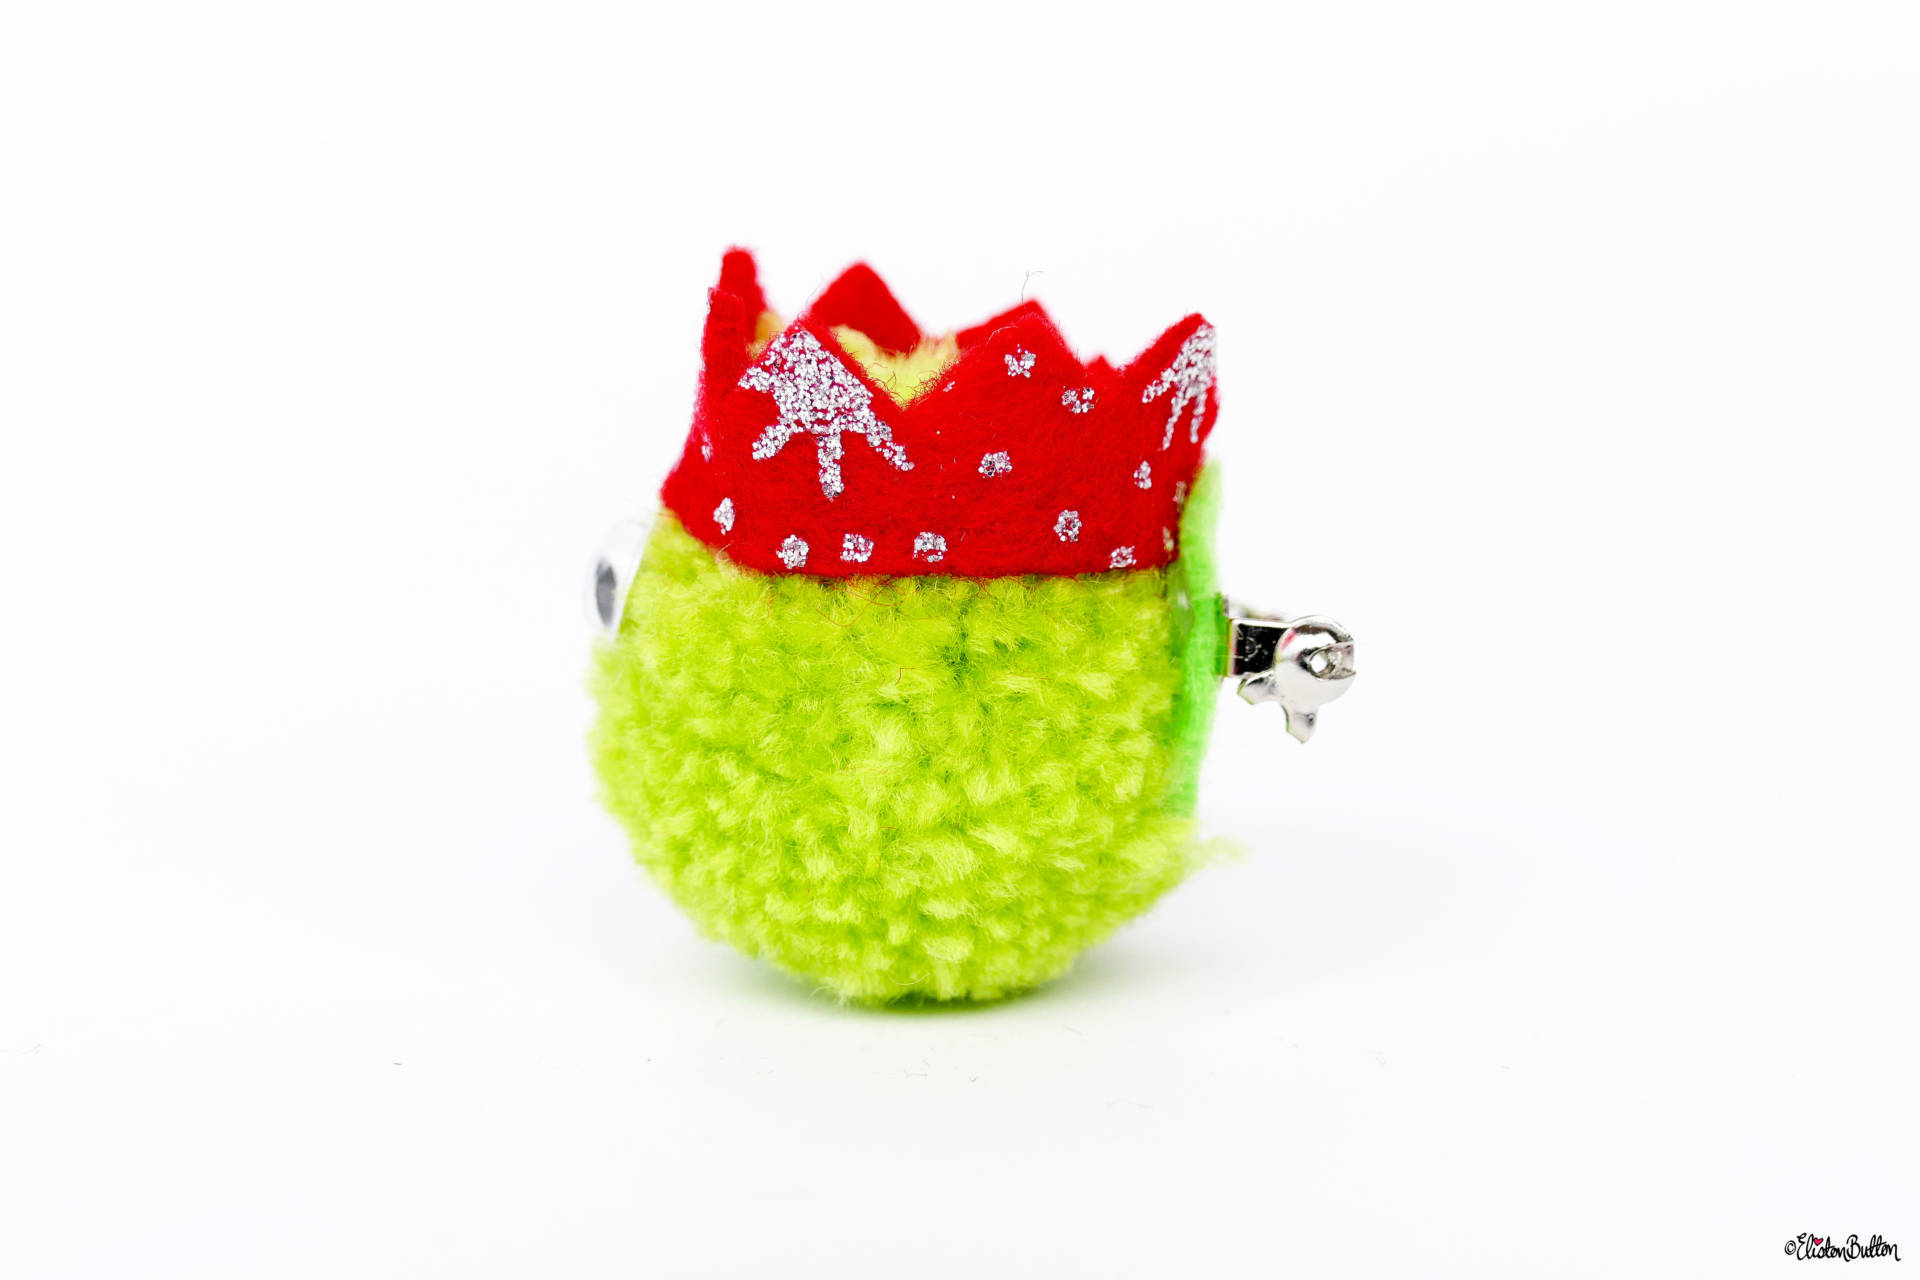 Light Green Christmas Sprout Pom Pom Brooch by Eliston Button - Side View - Christmas Sprout Pom Pom Brooches! at www.elistonbutton.com - Eliston Button - That Crafty Kid – Art, Design, Craft & Adventure.